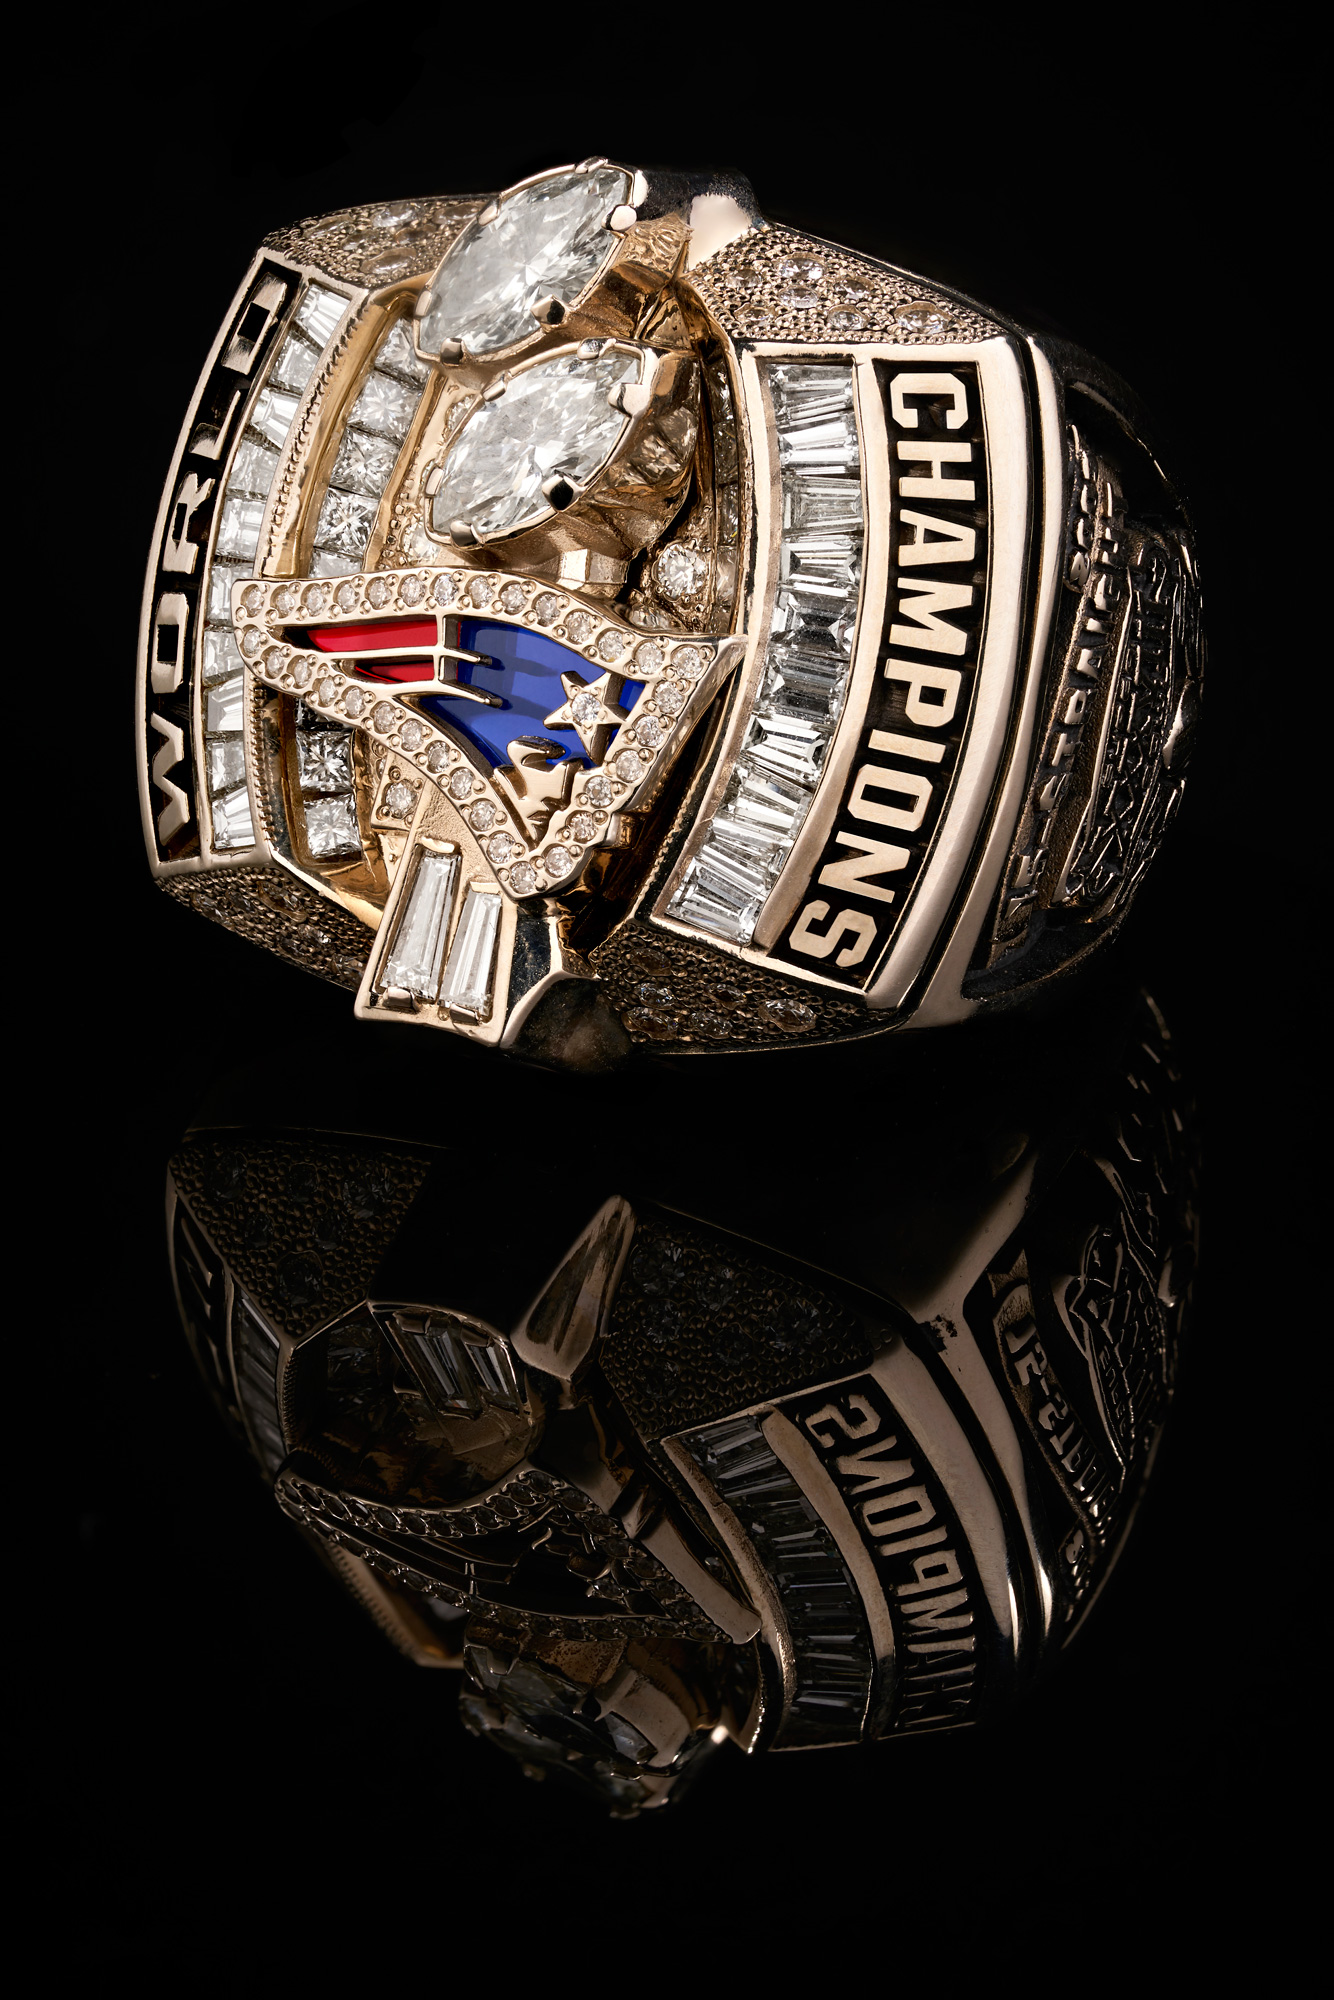 Product-Photograph-of-Super-Bowl-Rings-by-Architectural,-Interior,-and-Product-Photographer-Nick-McGinn-6.web.jpg